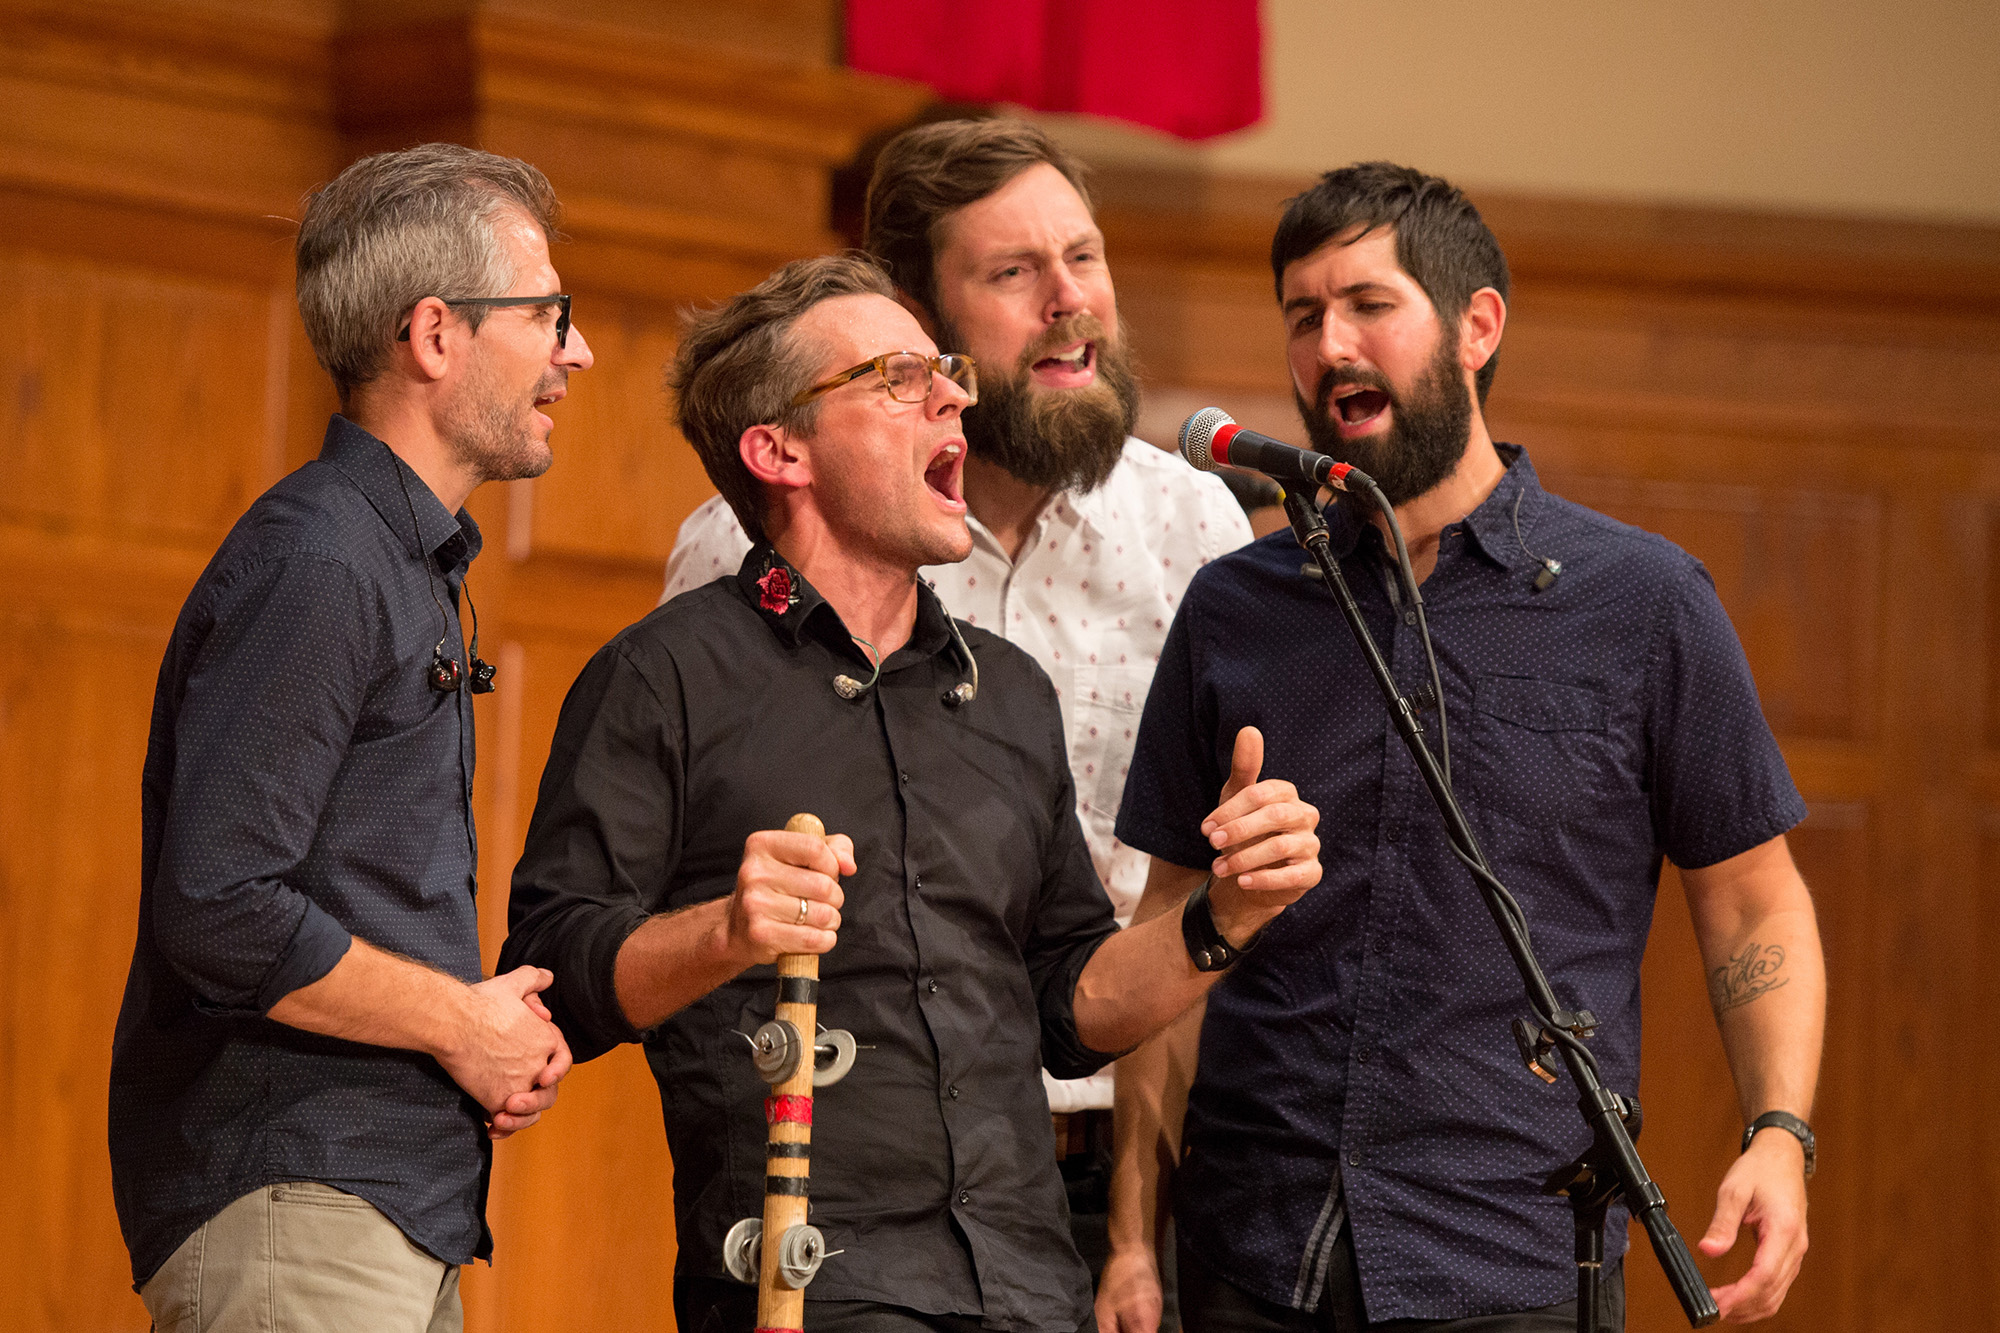 The Steel Wheels, a Virginia-based bluegrass band, performed a concert Saturday evening.